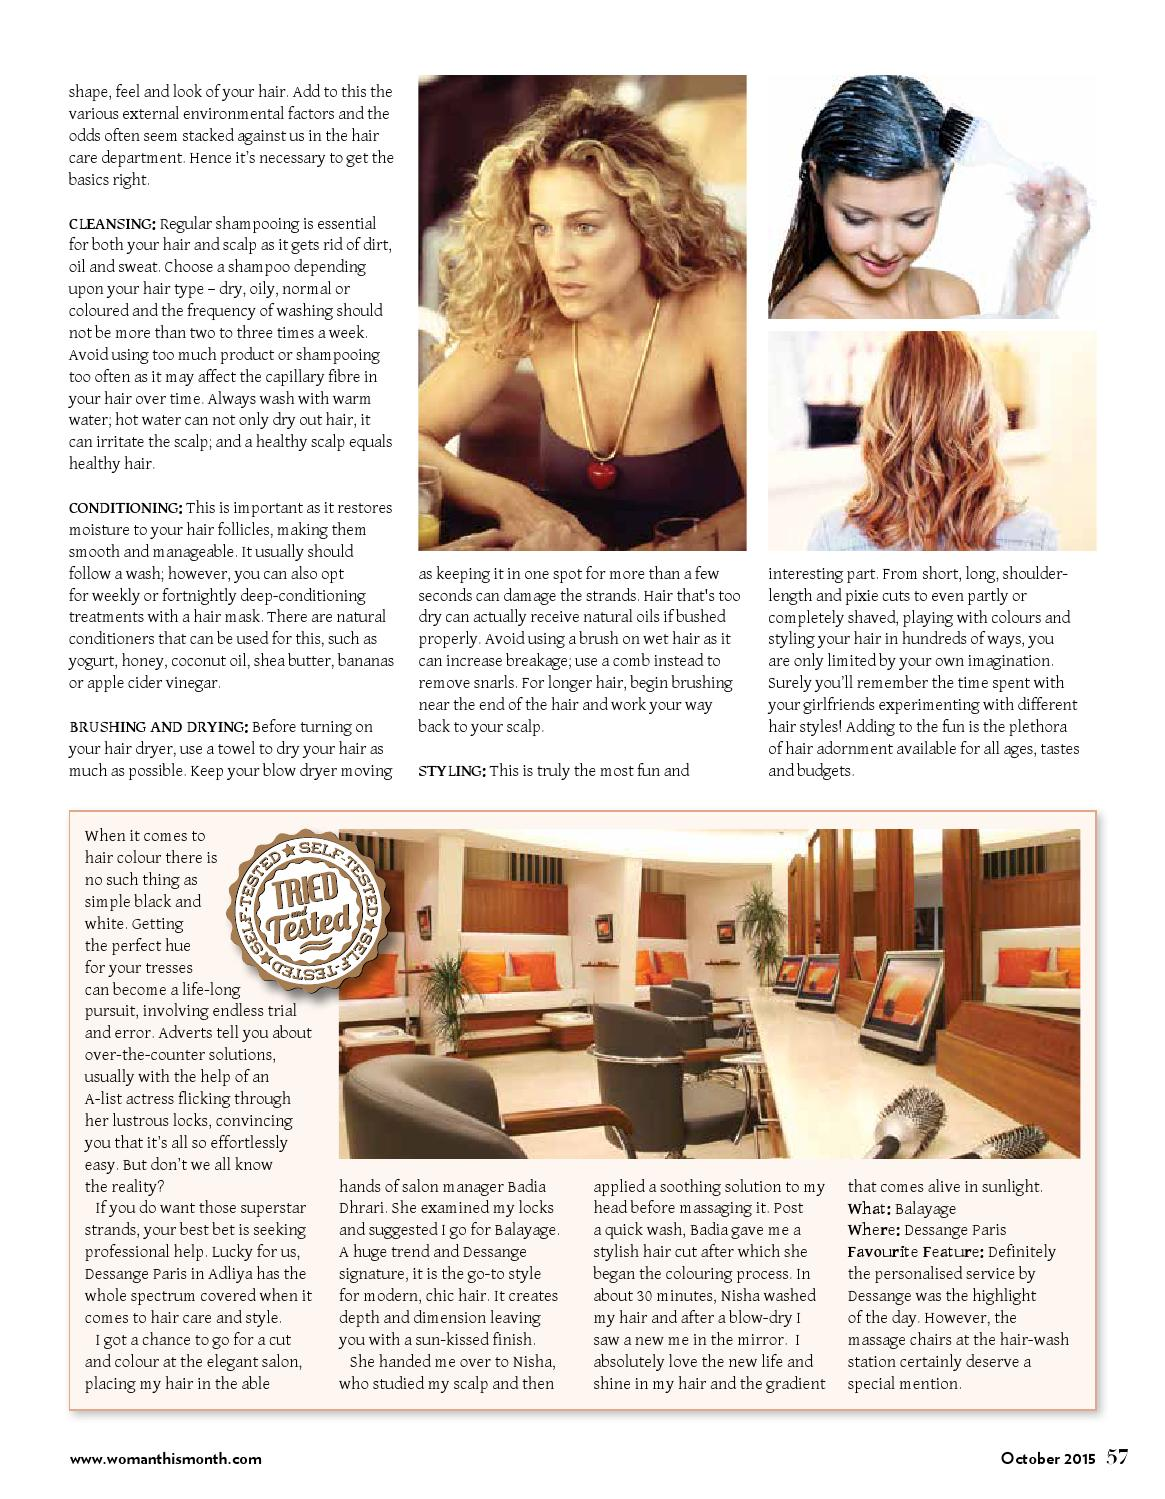 dda7dbf78b5 Woman This Month - October 2015 by Red House Marketing - issuu